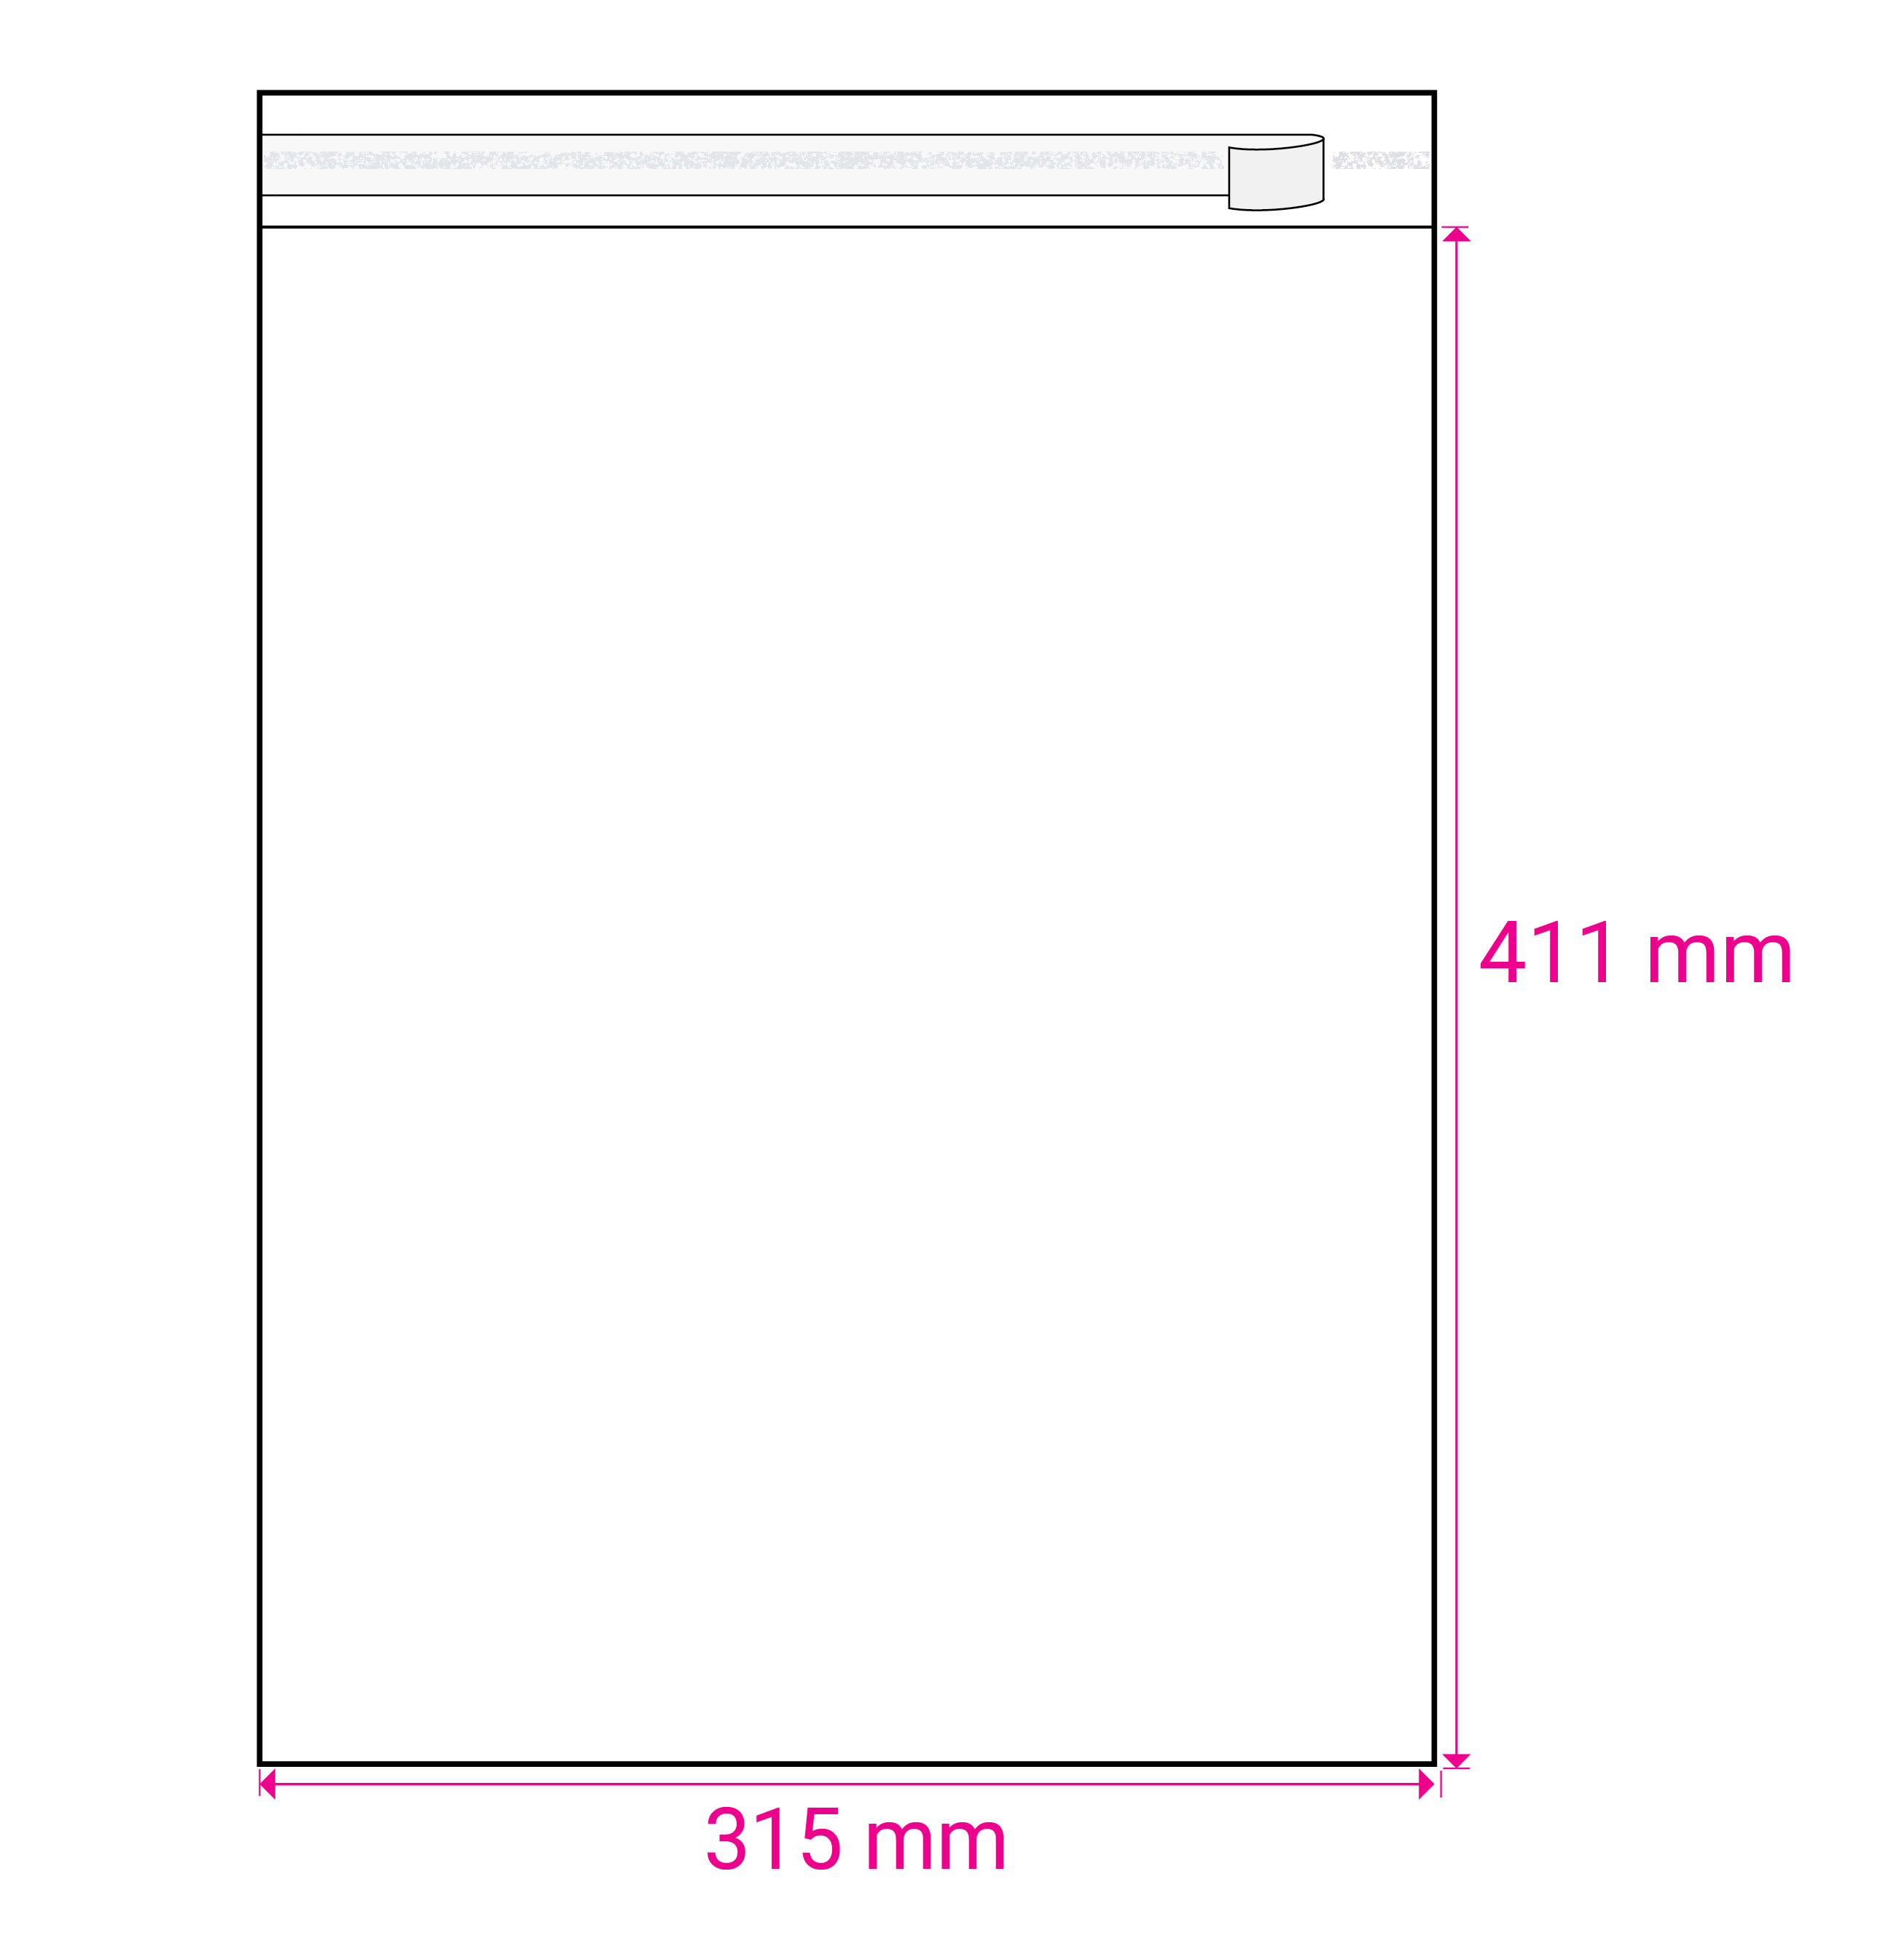 CLEAR CELLO BAGS to fit: A3 297 x 420 mm (SELF ADHESIVE)